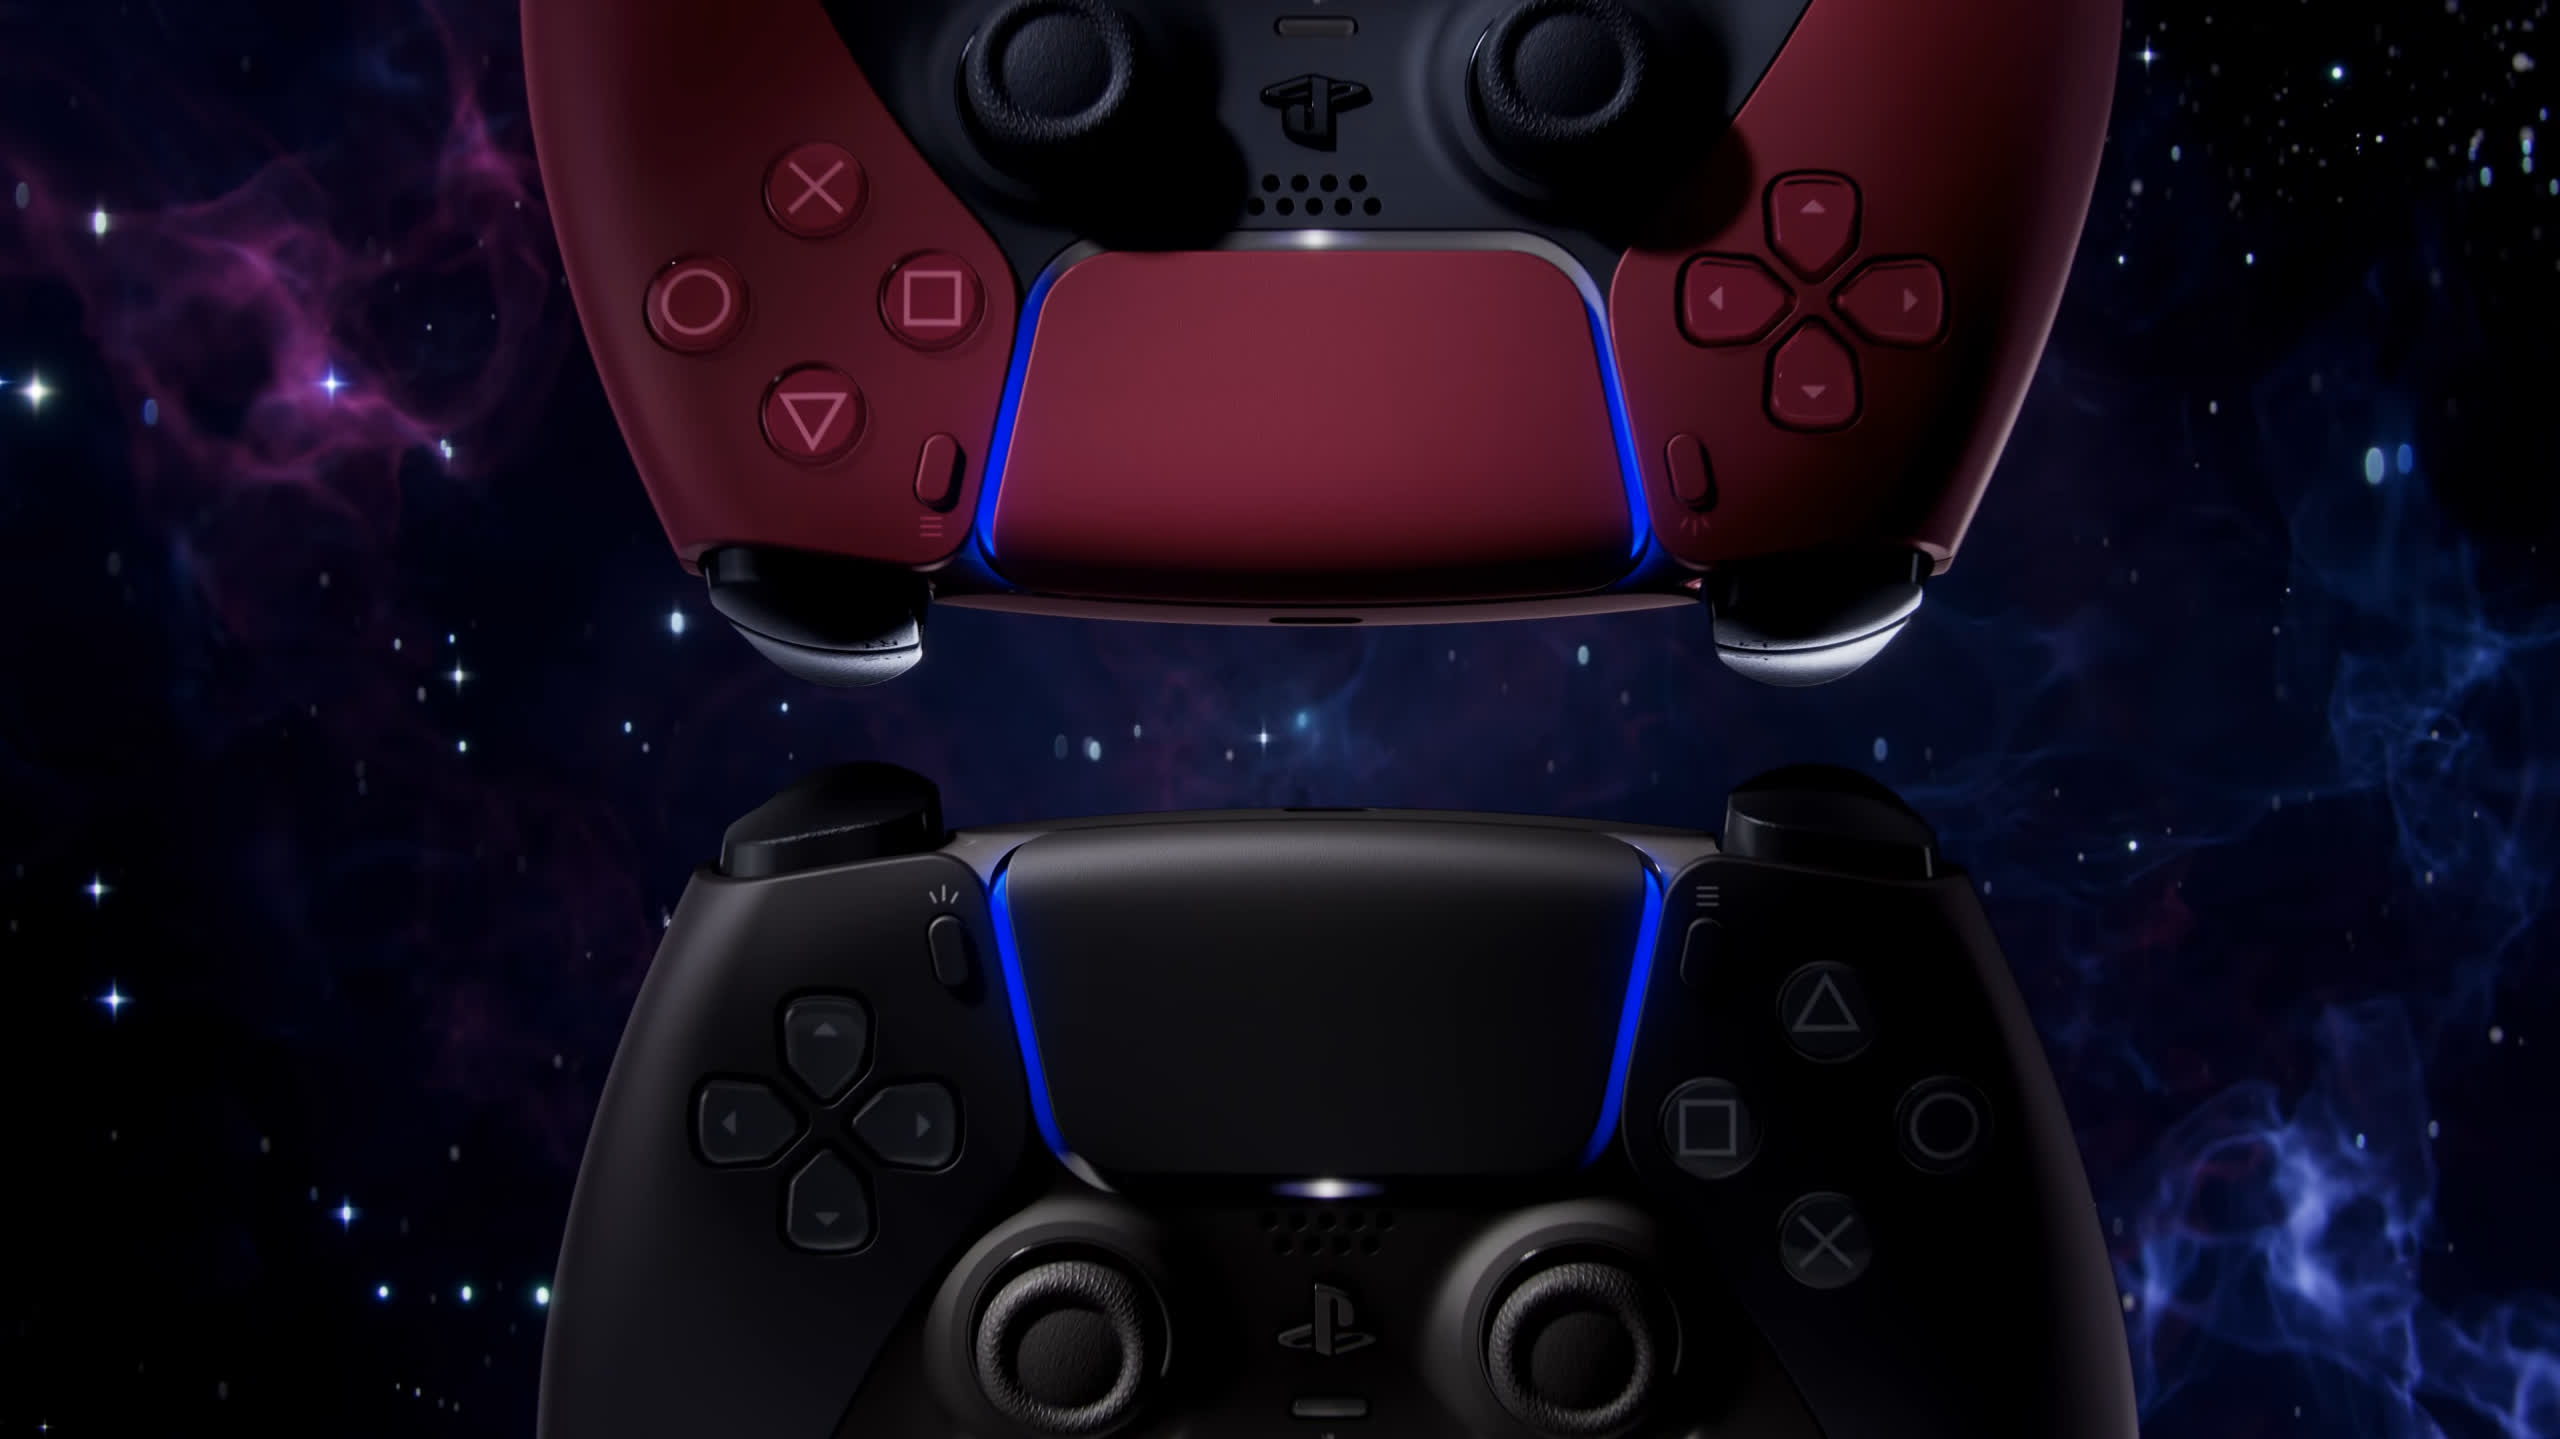 PS5 DualSense controllers now come in white, black, or red